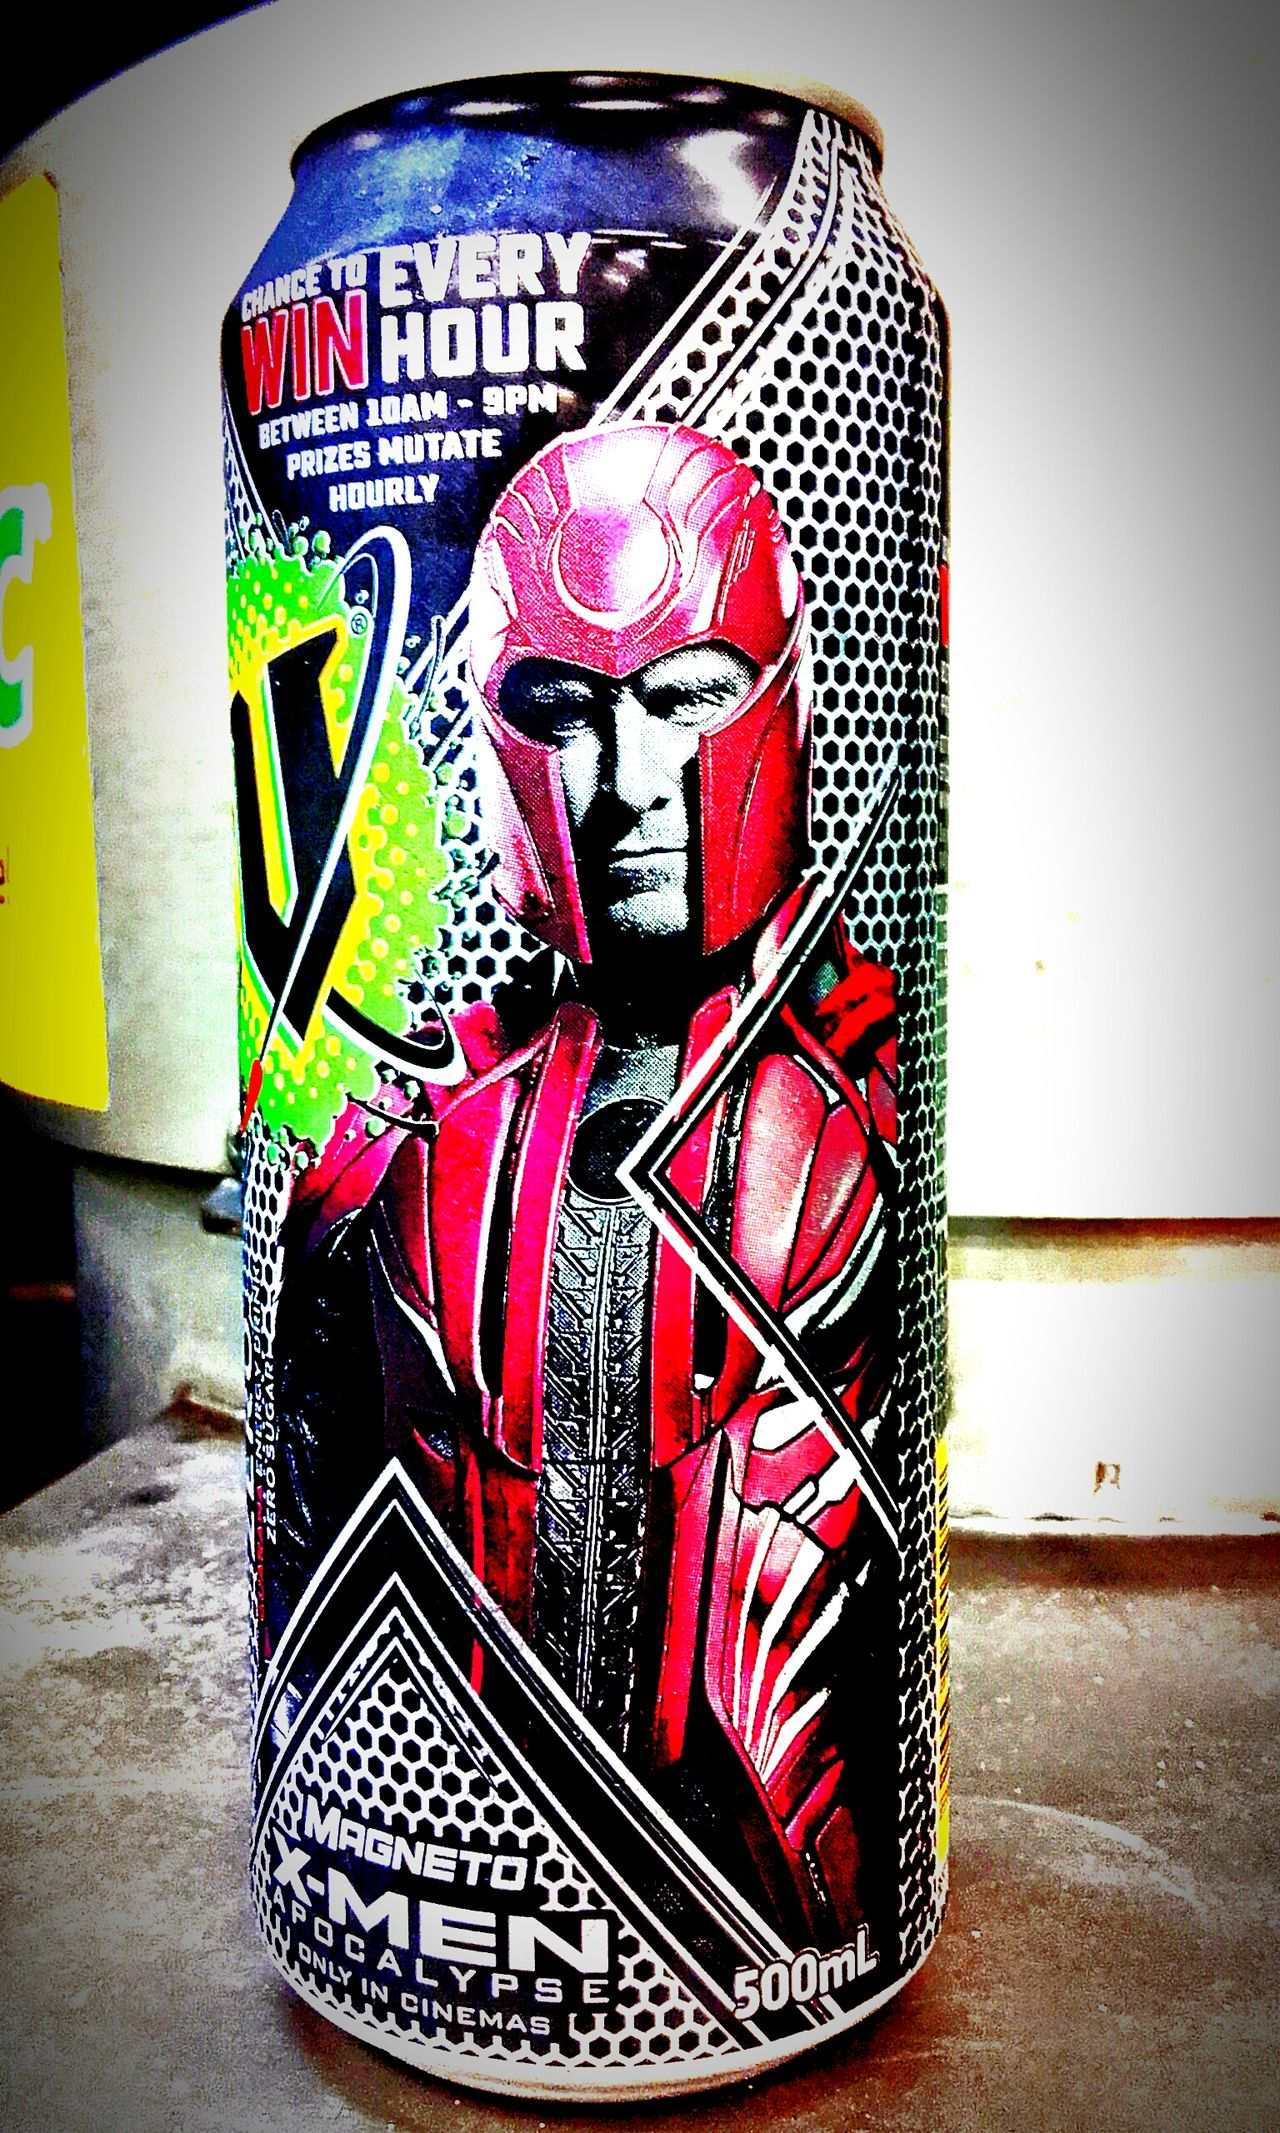 Xmen Magneto Energy Drink Drink Can Aluminium Cans Energydrinks Energydrink Energy Drinks Cans Drinkcans EnergyDrinkCans V Energy Drink V X-men Apocalypse Aluminiumcans Xmenapocalypse X Men X-men Apocalypse Xmencollection Aluminum Can MagnetoMan Magneto Man Aluminiumcan Aluminium Can